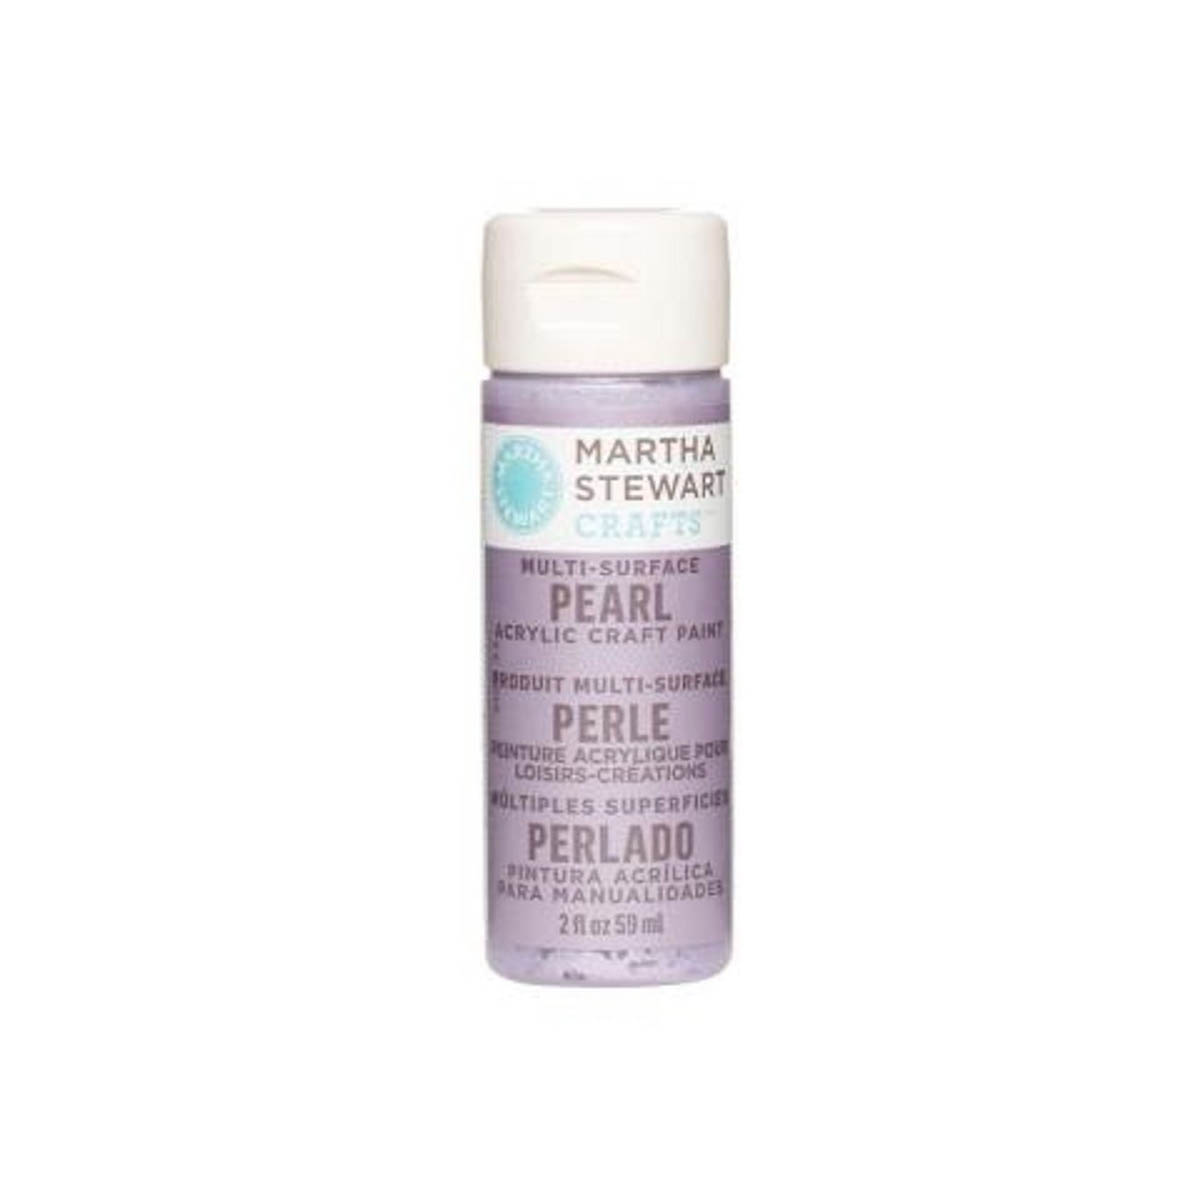 Martha Stewart ® Multi-Surface Pearl Acrylic Craft Paint - Eclipse, 2 oz.